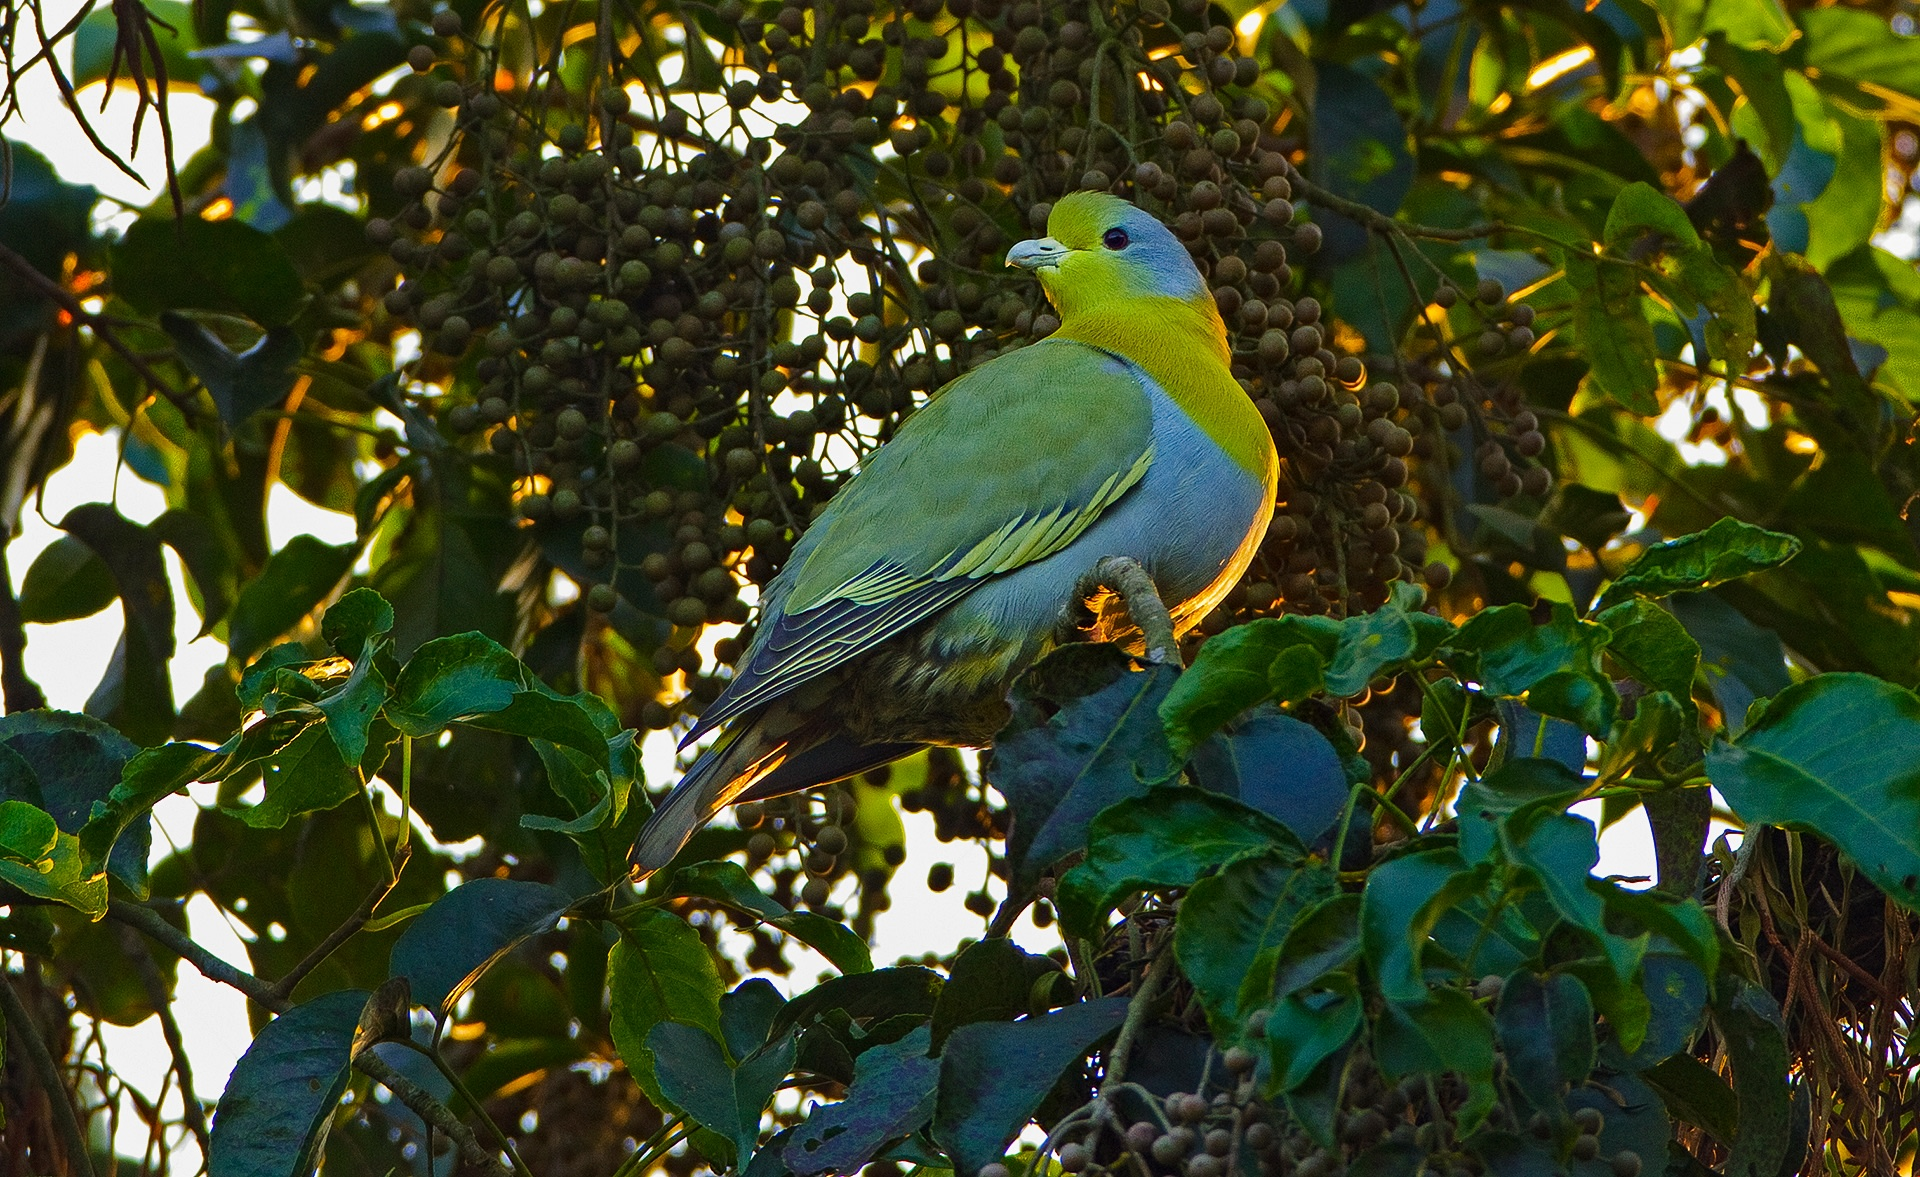 The yellow-footed green pigeon is among the sanctuary's more striking inhabitants. It is one of the 283 avian species that call the reserve home. Photo: Dhritiman Mukherjee  The landscape of Assam's Dehing Patkai Sanctuary is moulded by the Burhi Dihing river, which winds its way through the reserve forest. Photo: Dhritiman Mukherjee